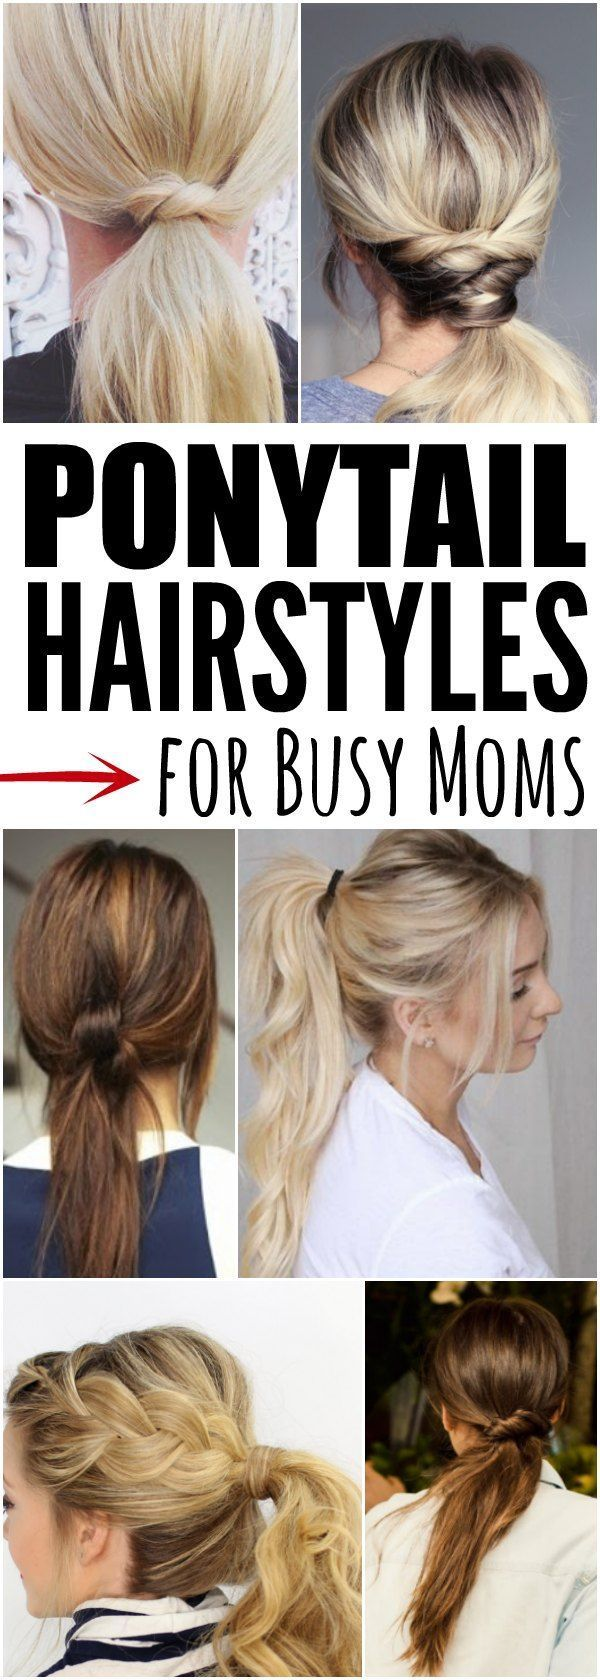 Here are quick and easy ponytail hairstyles for busy moms look